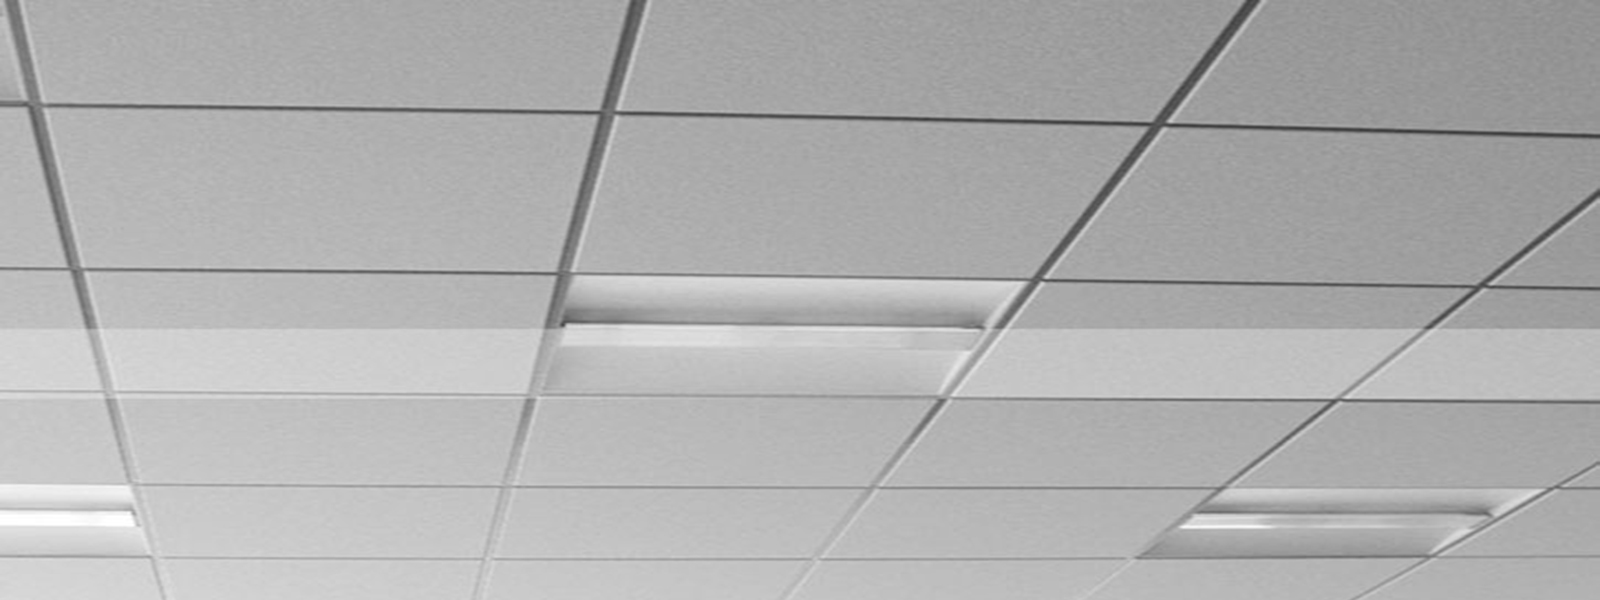 Metal Ceiling Tiles Wholesaler And Supplier In Pune